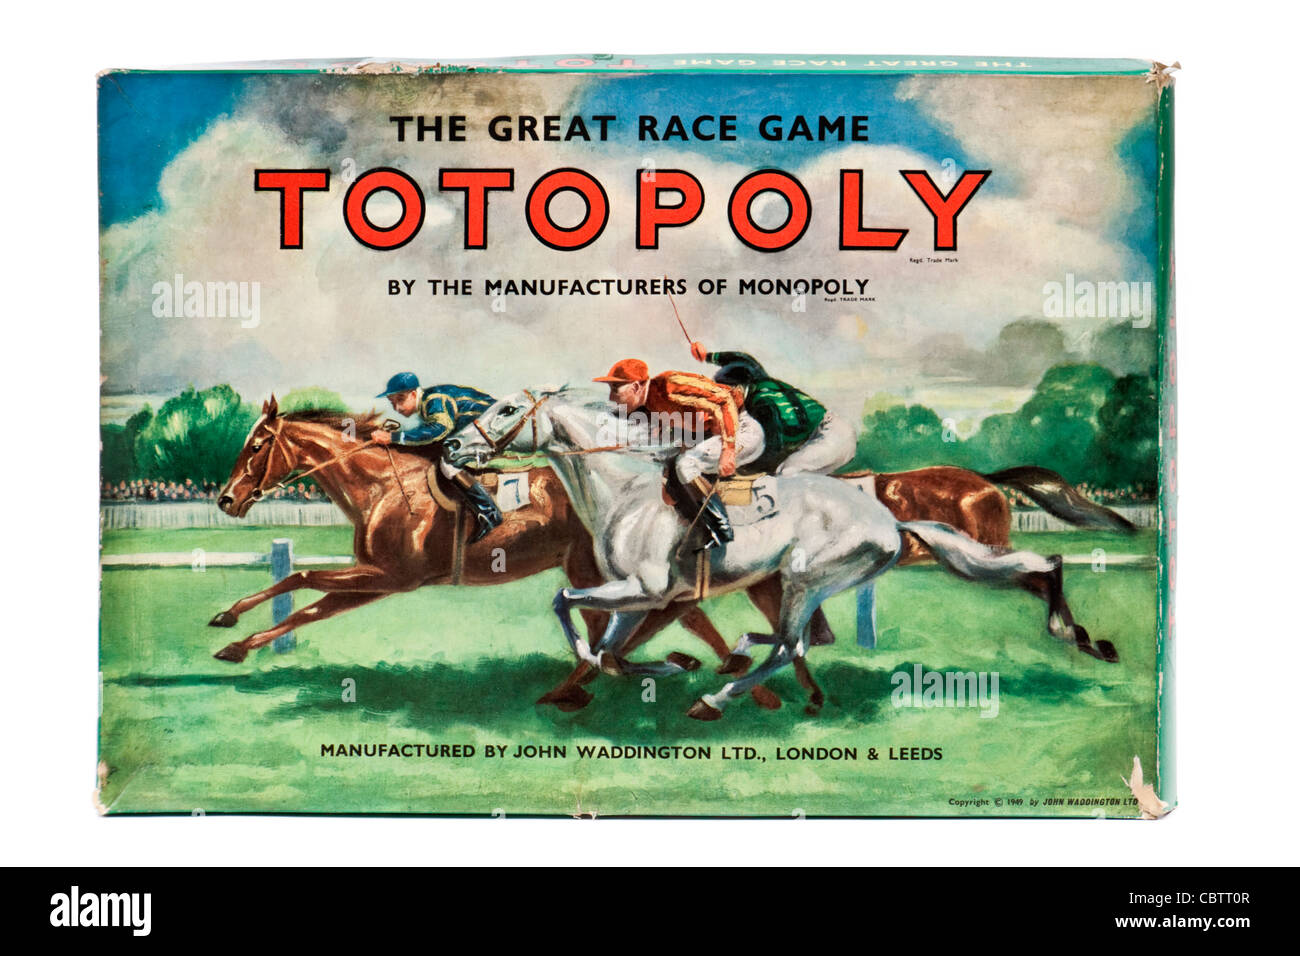 1949 Vintage Totopoly Horse Racing Board Game By John Waddington Stock Photo Alamy